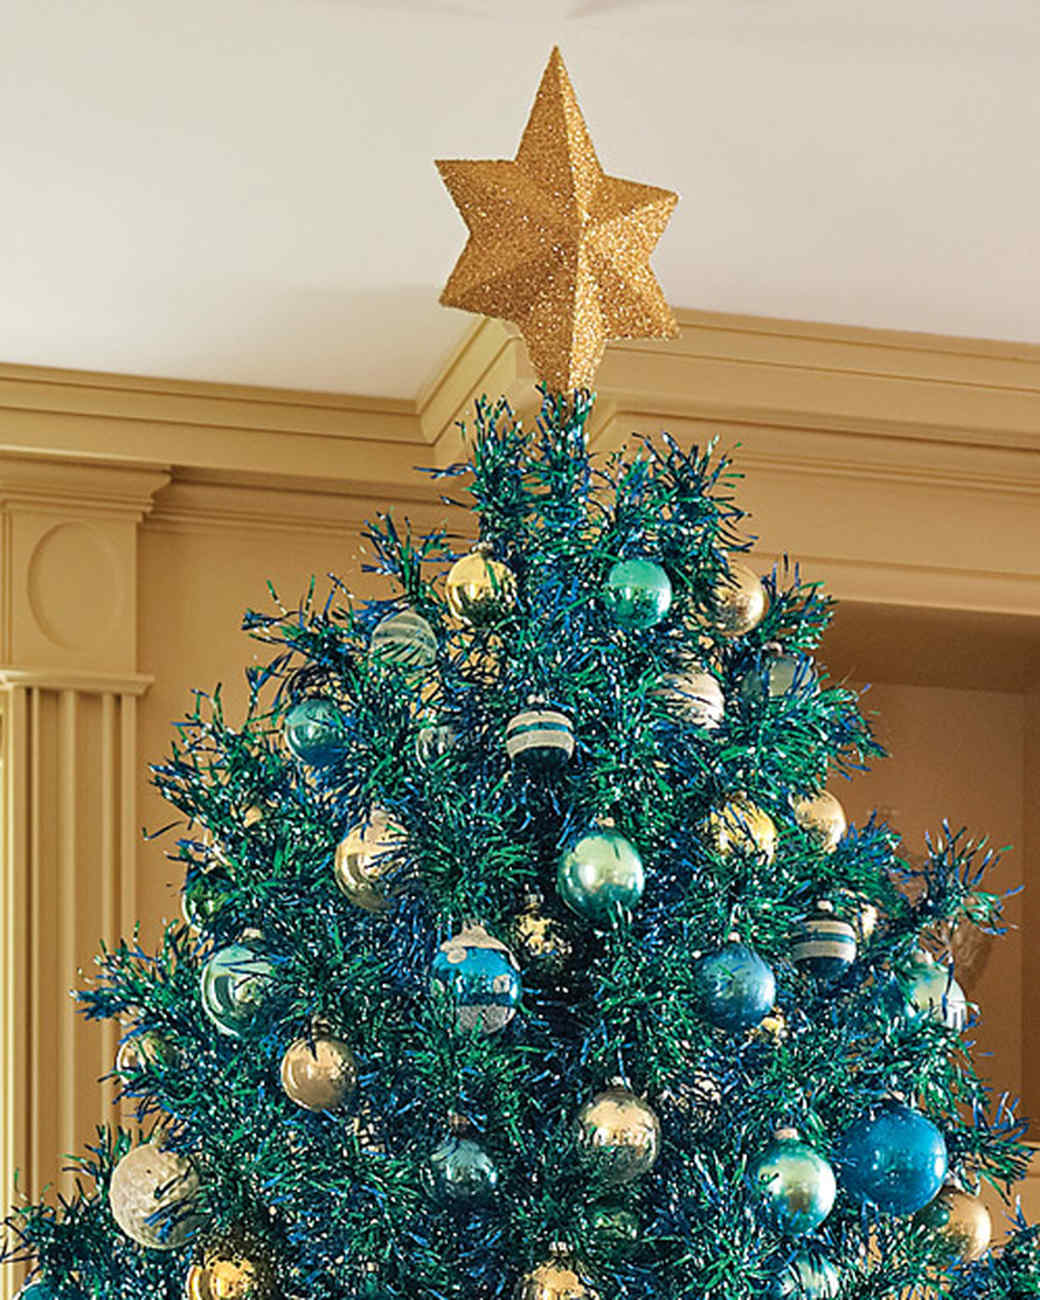 Glittered Star Tree Topper - Martha Stewart